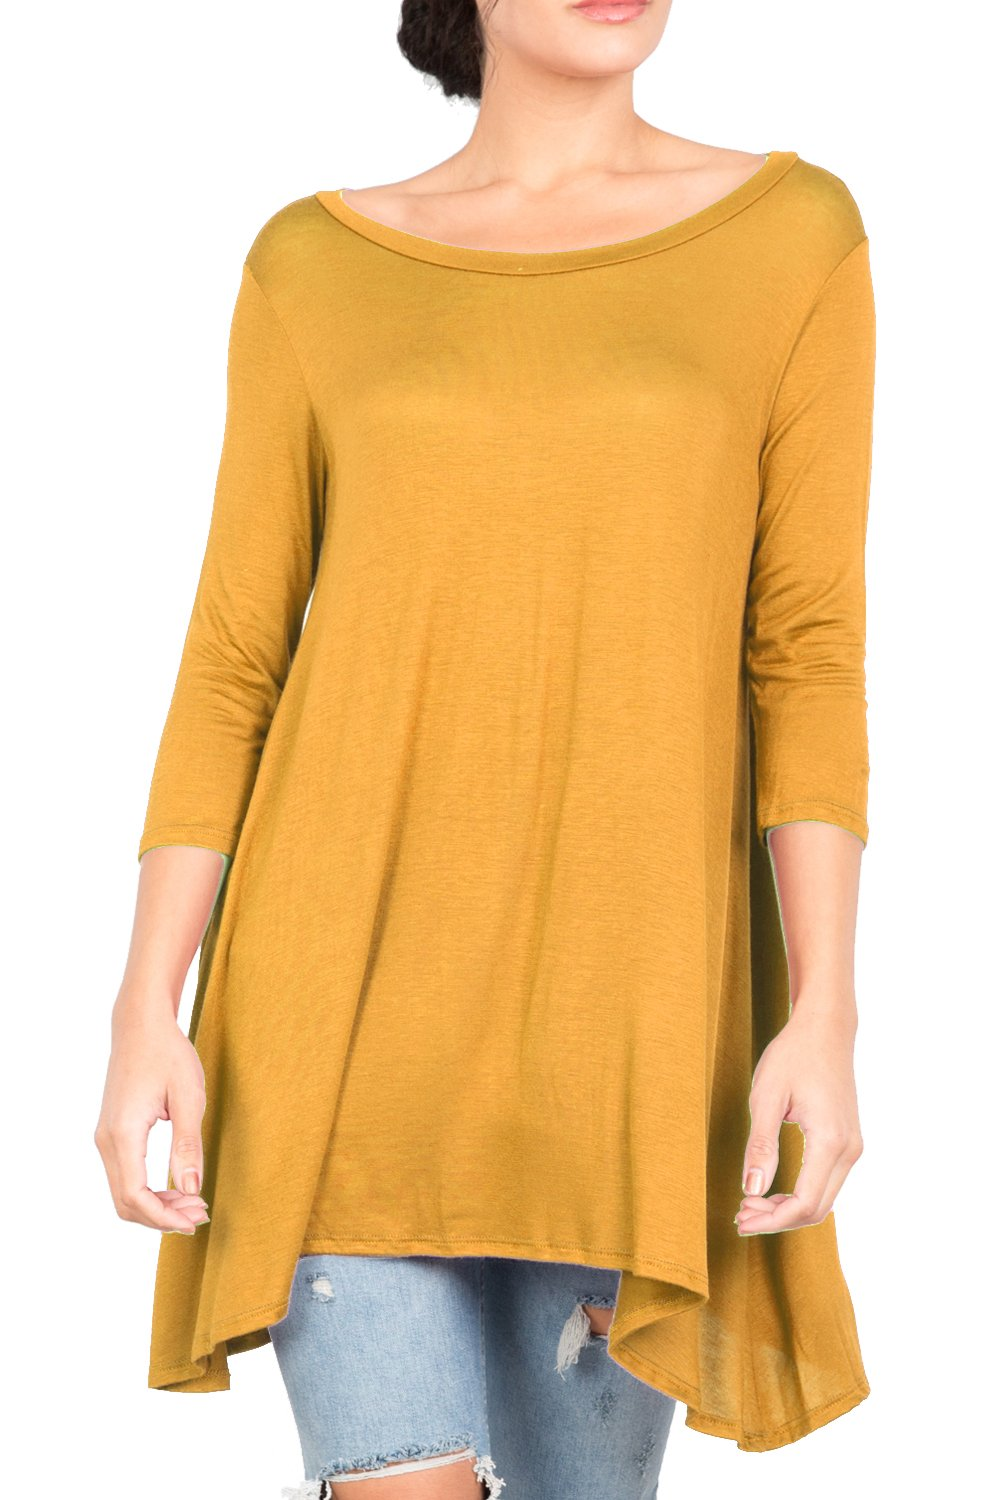 Love In T2411 3/4 Sleeve Round Neck Relaxed A-Line Tunic T Shirt Top Mustard L